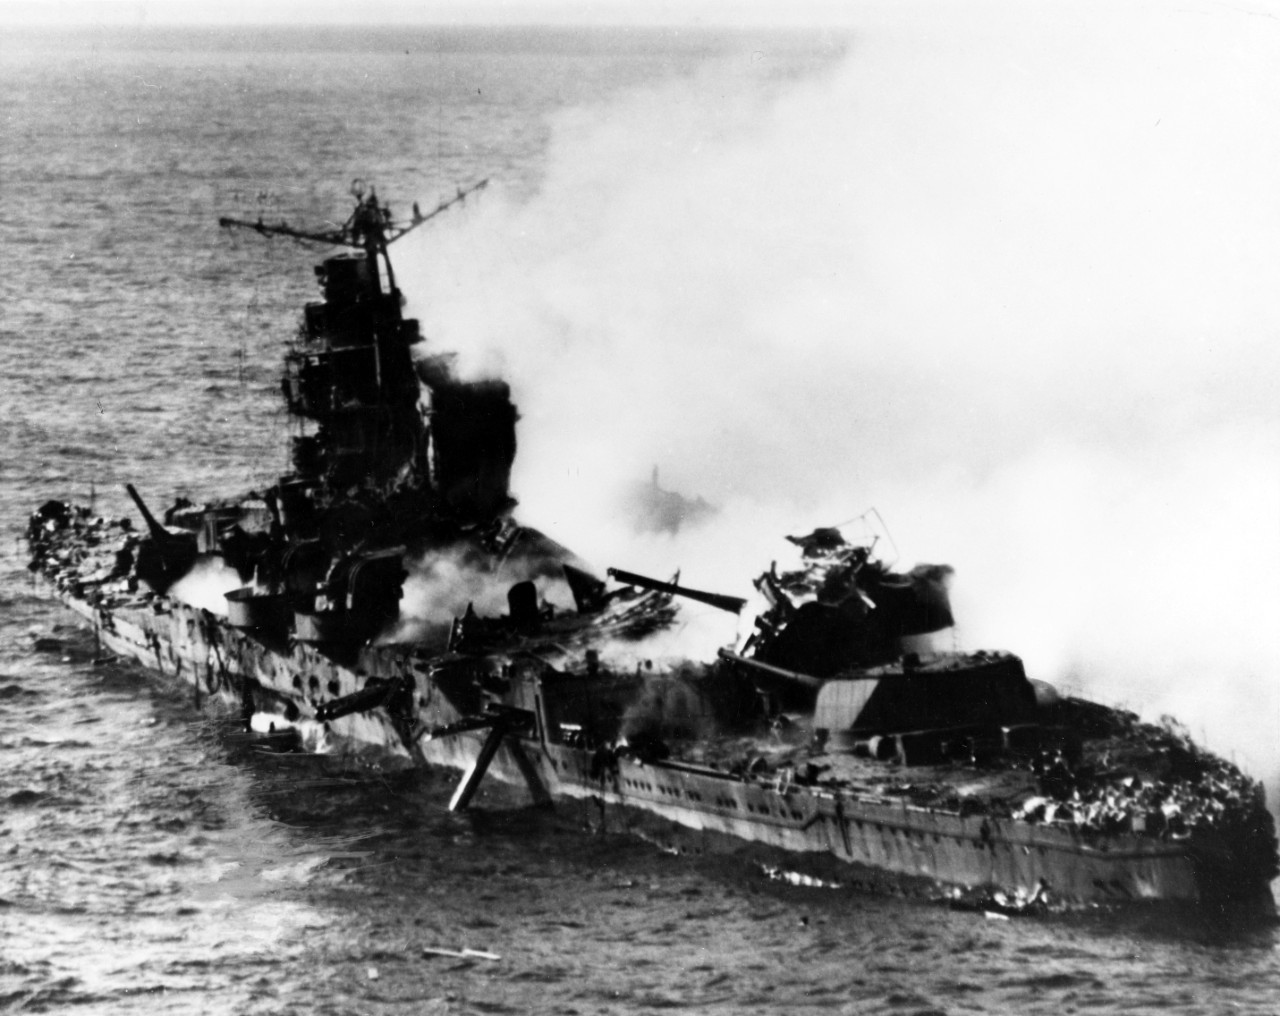 This close up picture shows the devastated ship in more detail. Her midships structure lies shattered, and both portside torpedo tubes are trained outboard. Parts of the aft superstructure, and possibly the mainmast, collapse across her No. 4 8-inch gun turret — the wreckage does not comprise Capt. Fleming's Vindicator, which crashes into the sea. (U.S. Navy Photograph 80-G-414422, National Archives and Records Administration, Still Pictures Section, College Park, Md.)